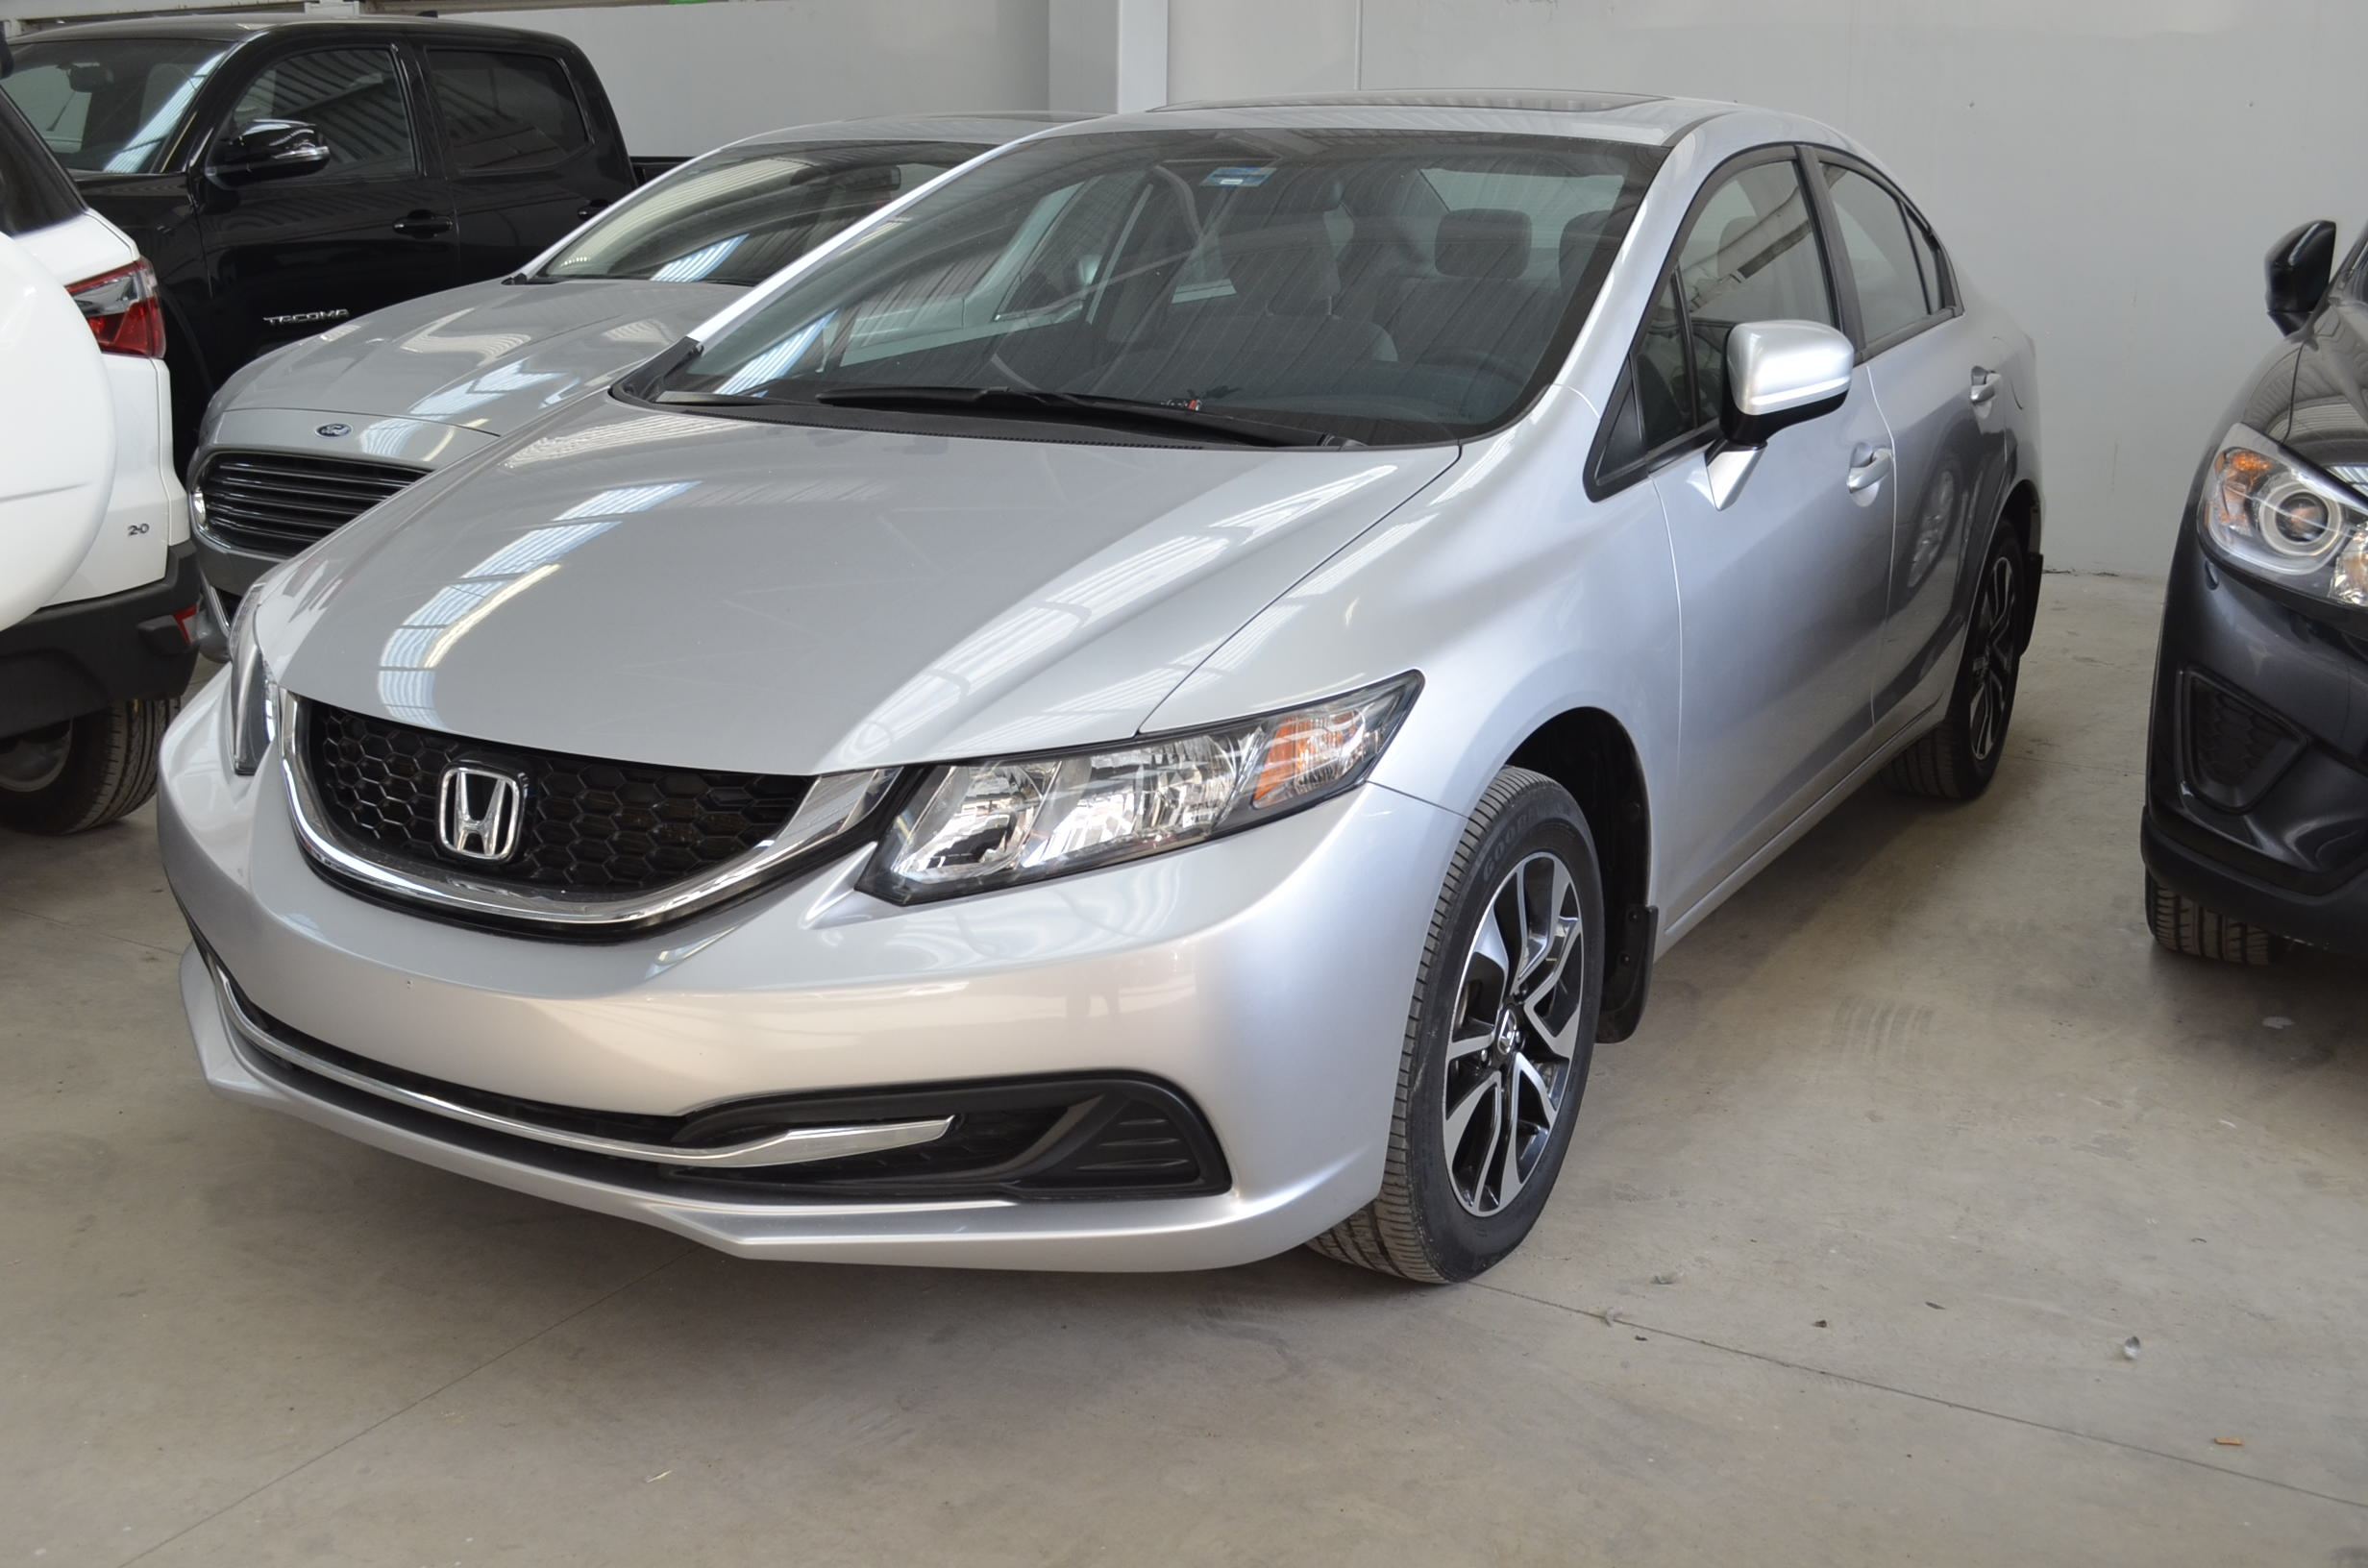 Honda Civic 242,000